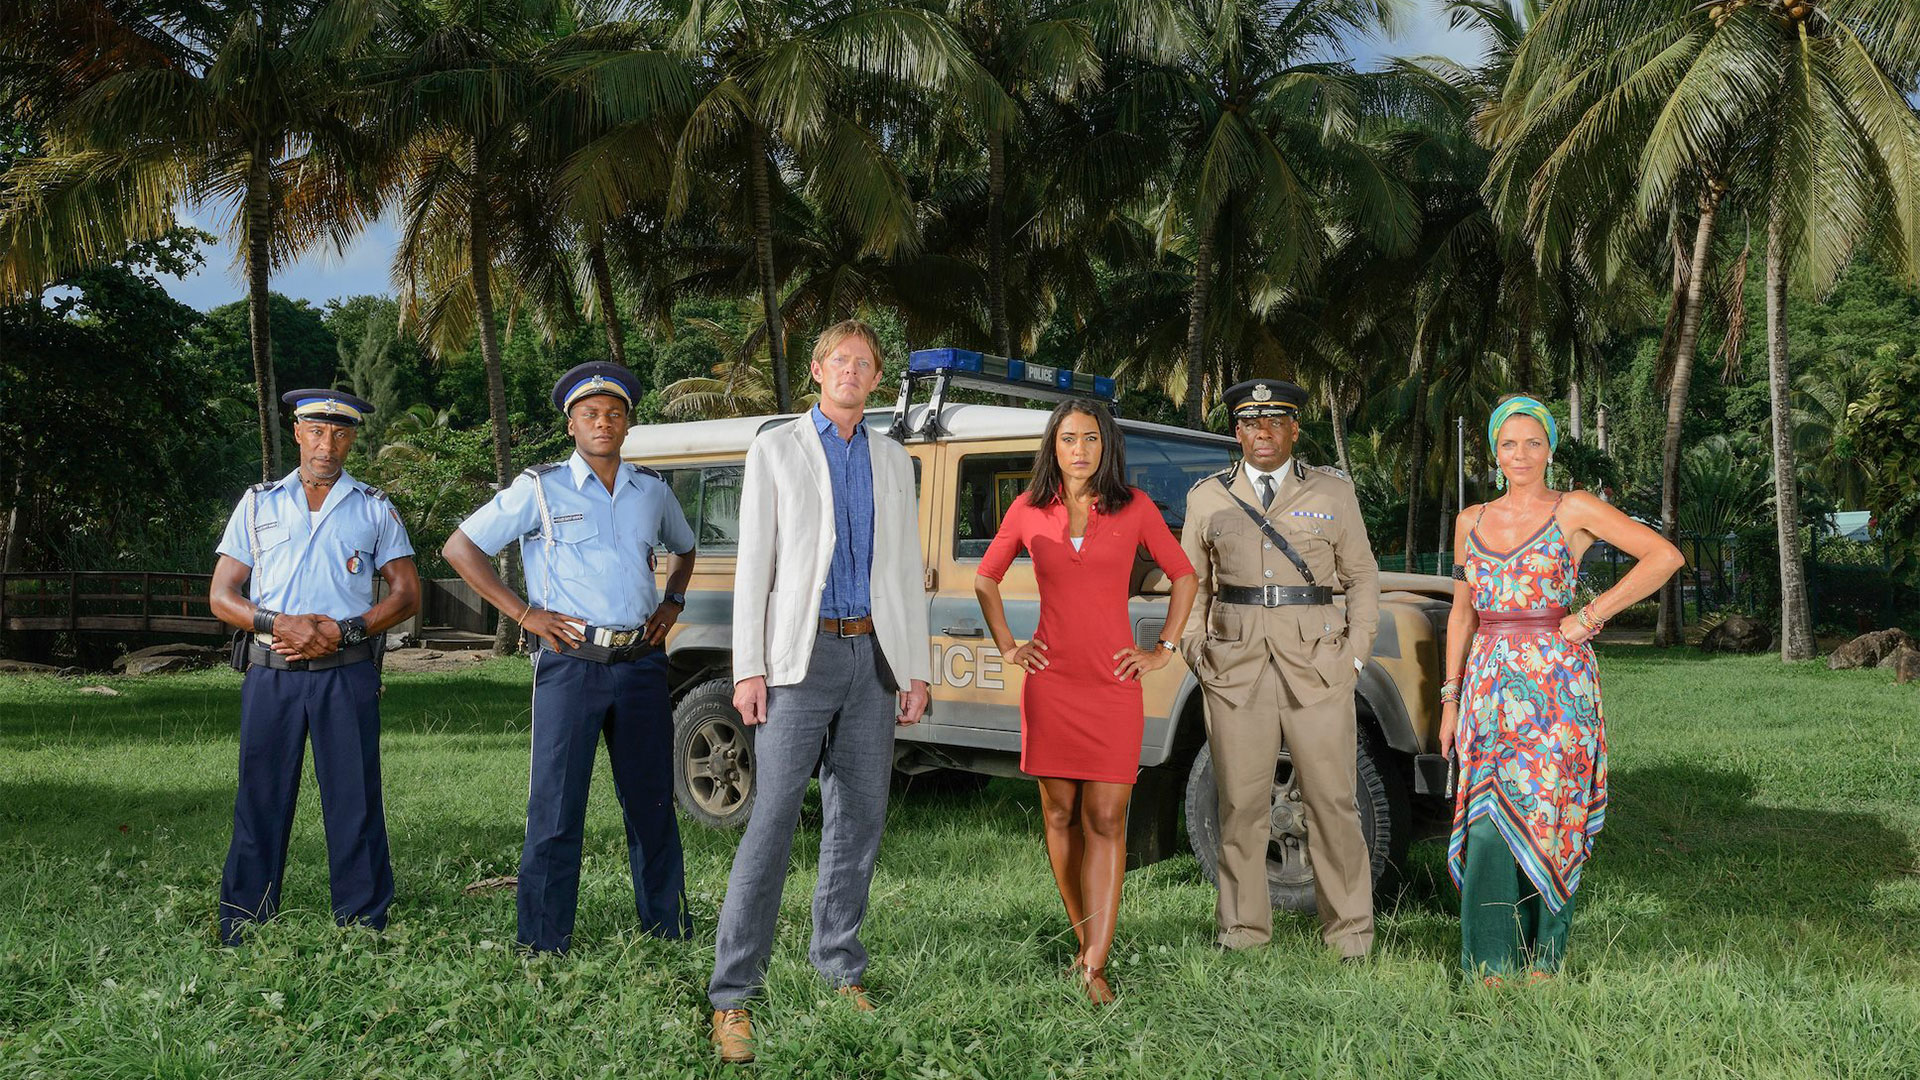 The cast of DEATH IN PARADISE: Season 6. DI Humphrey Goodman and his team are back solving increasingly puzzling murders on the beautiful island of Saint Marie.